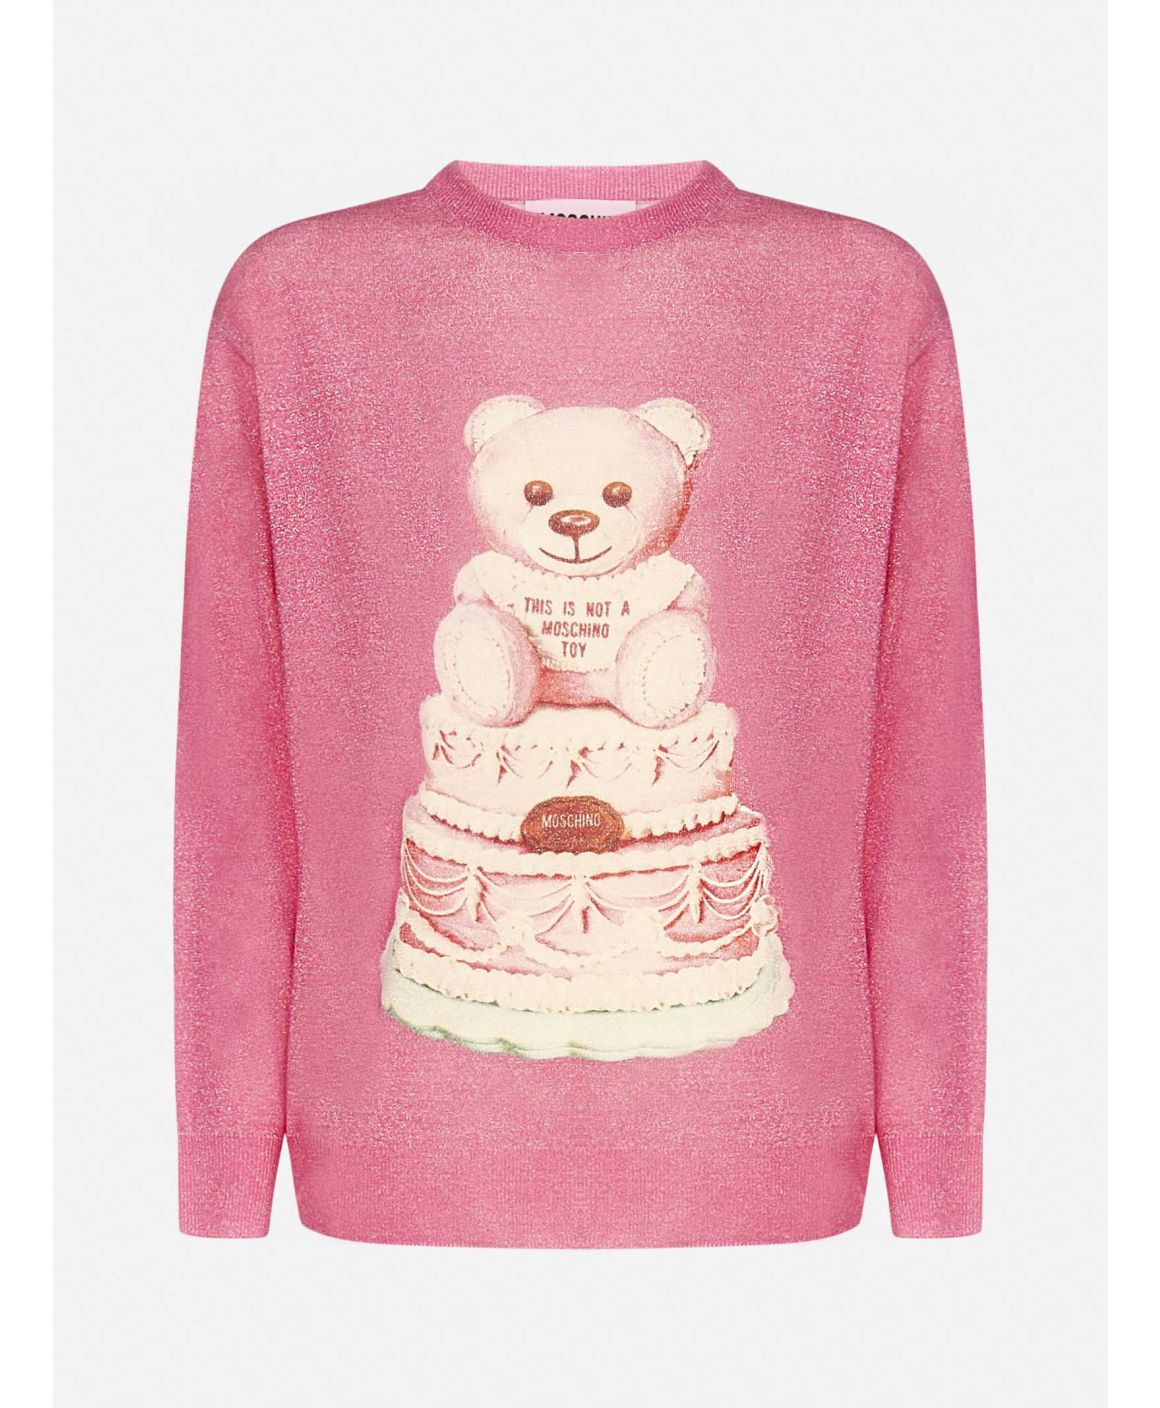 Cake Teddy Bear wool sweater